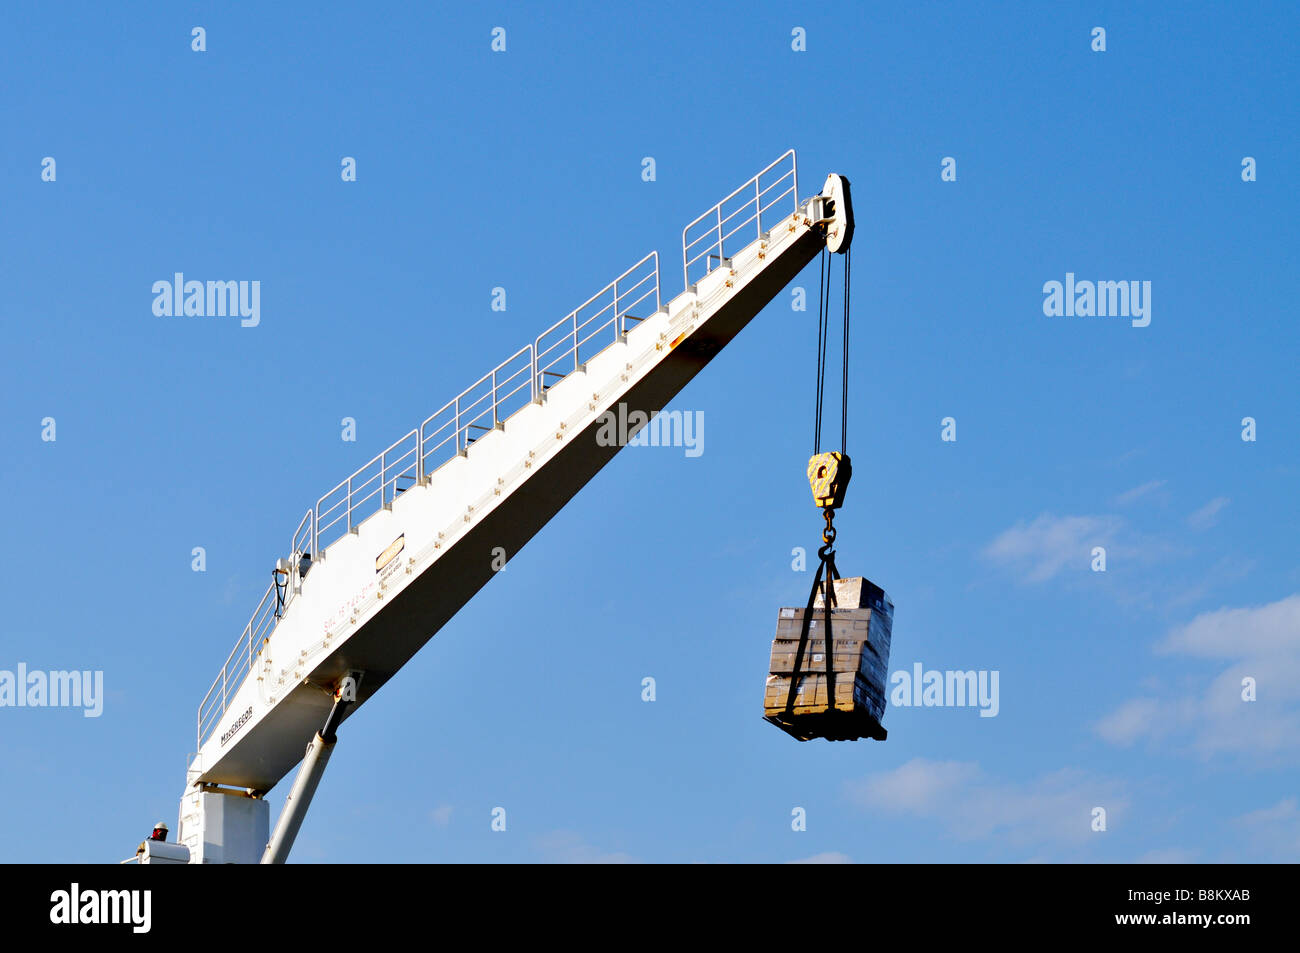 Crane hoisting a heavy pallet of ship's supplies against a [clear deep blue sky]. - Stock Image